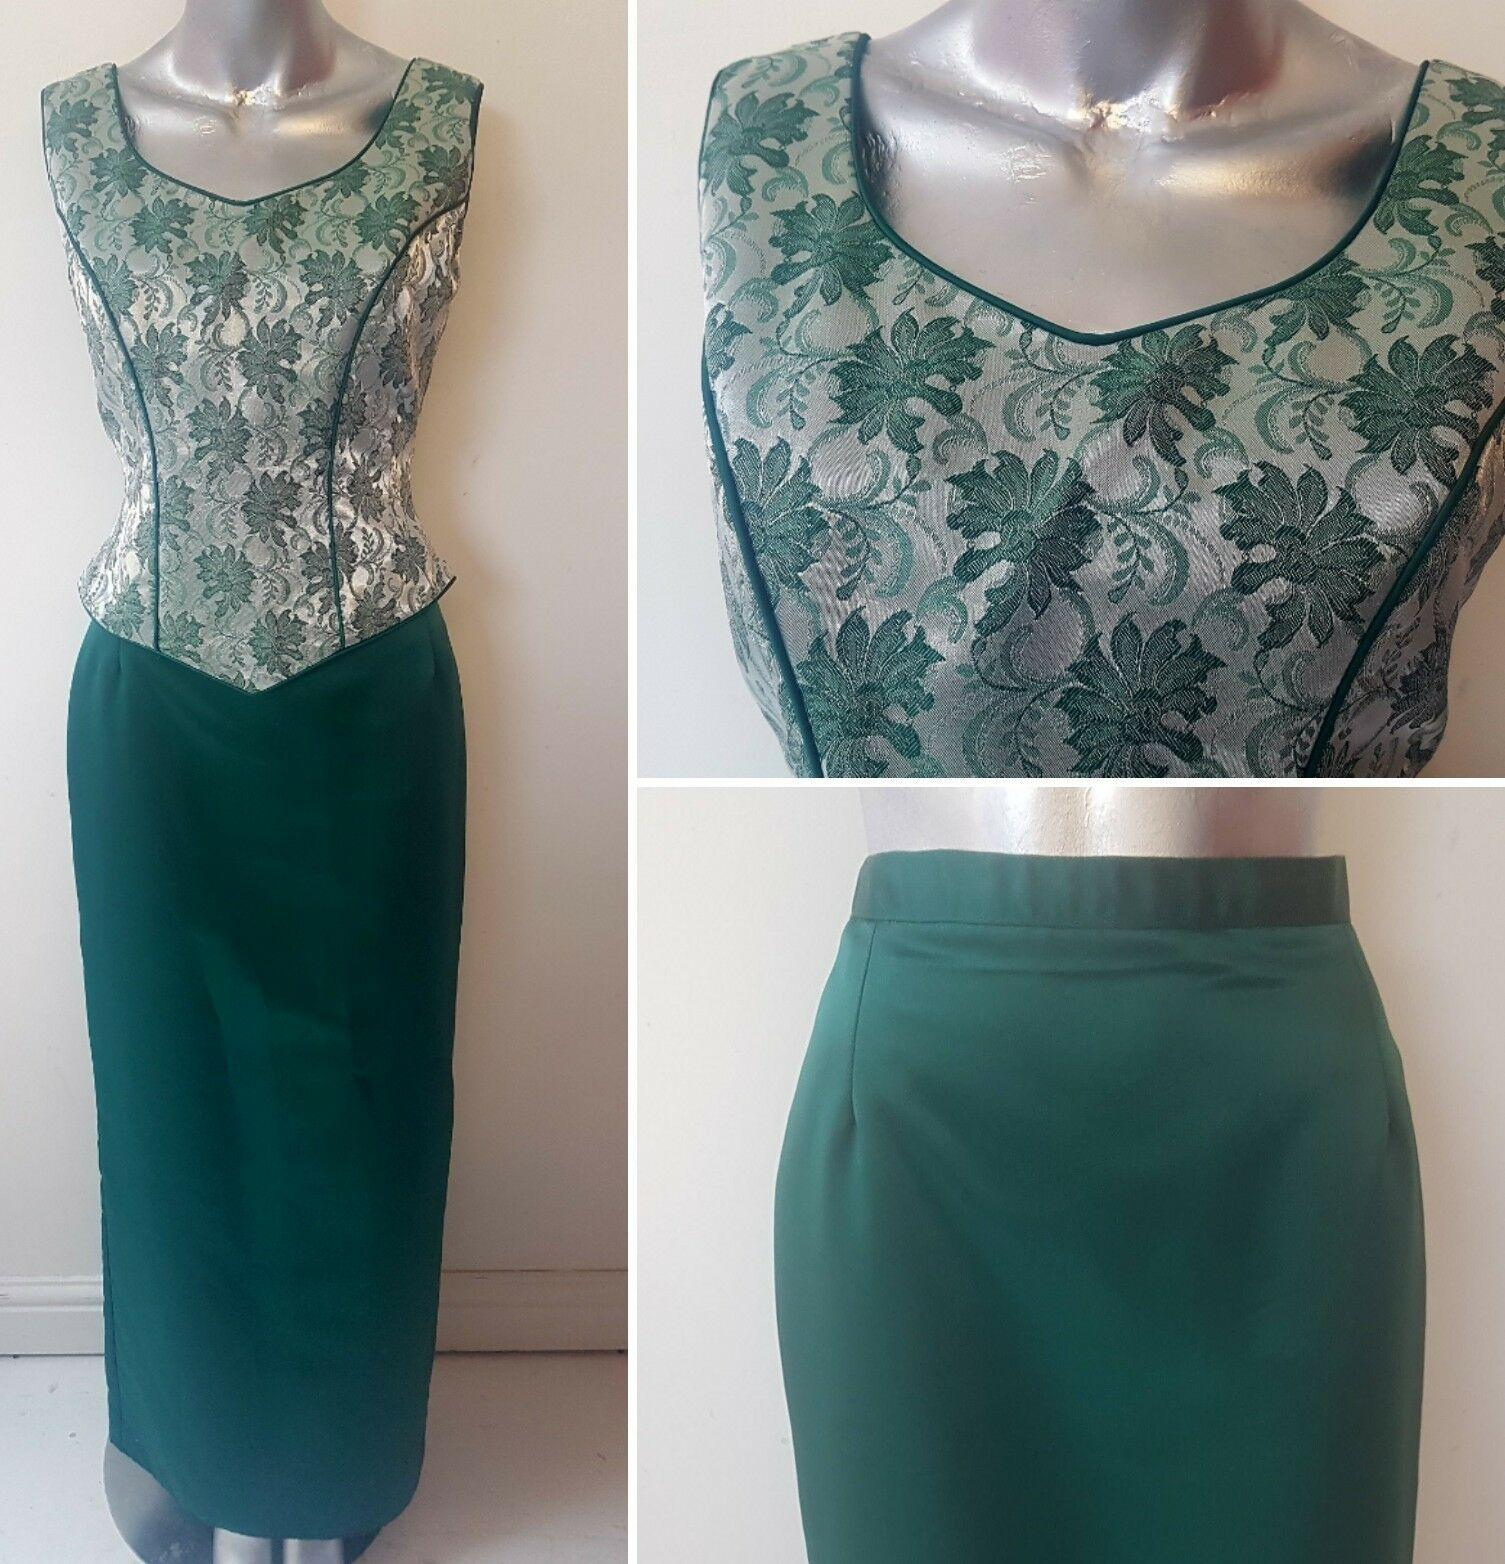 GREEN MEDIEVAL STYLE SKIRT & BODICE SIZE 8 10 RECONSTRUCTION COSPLAY DRESS (12)